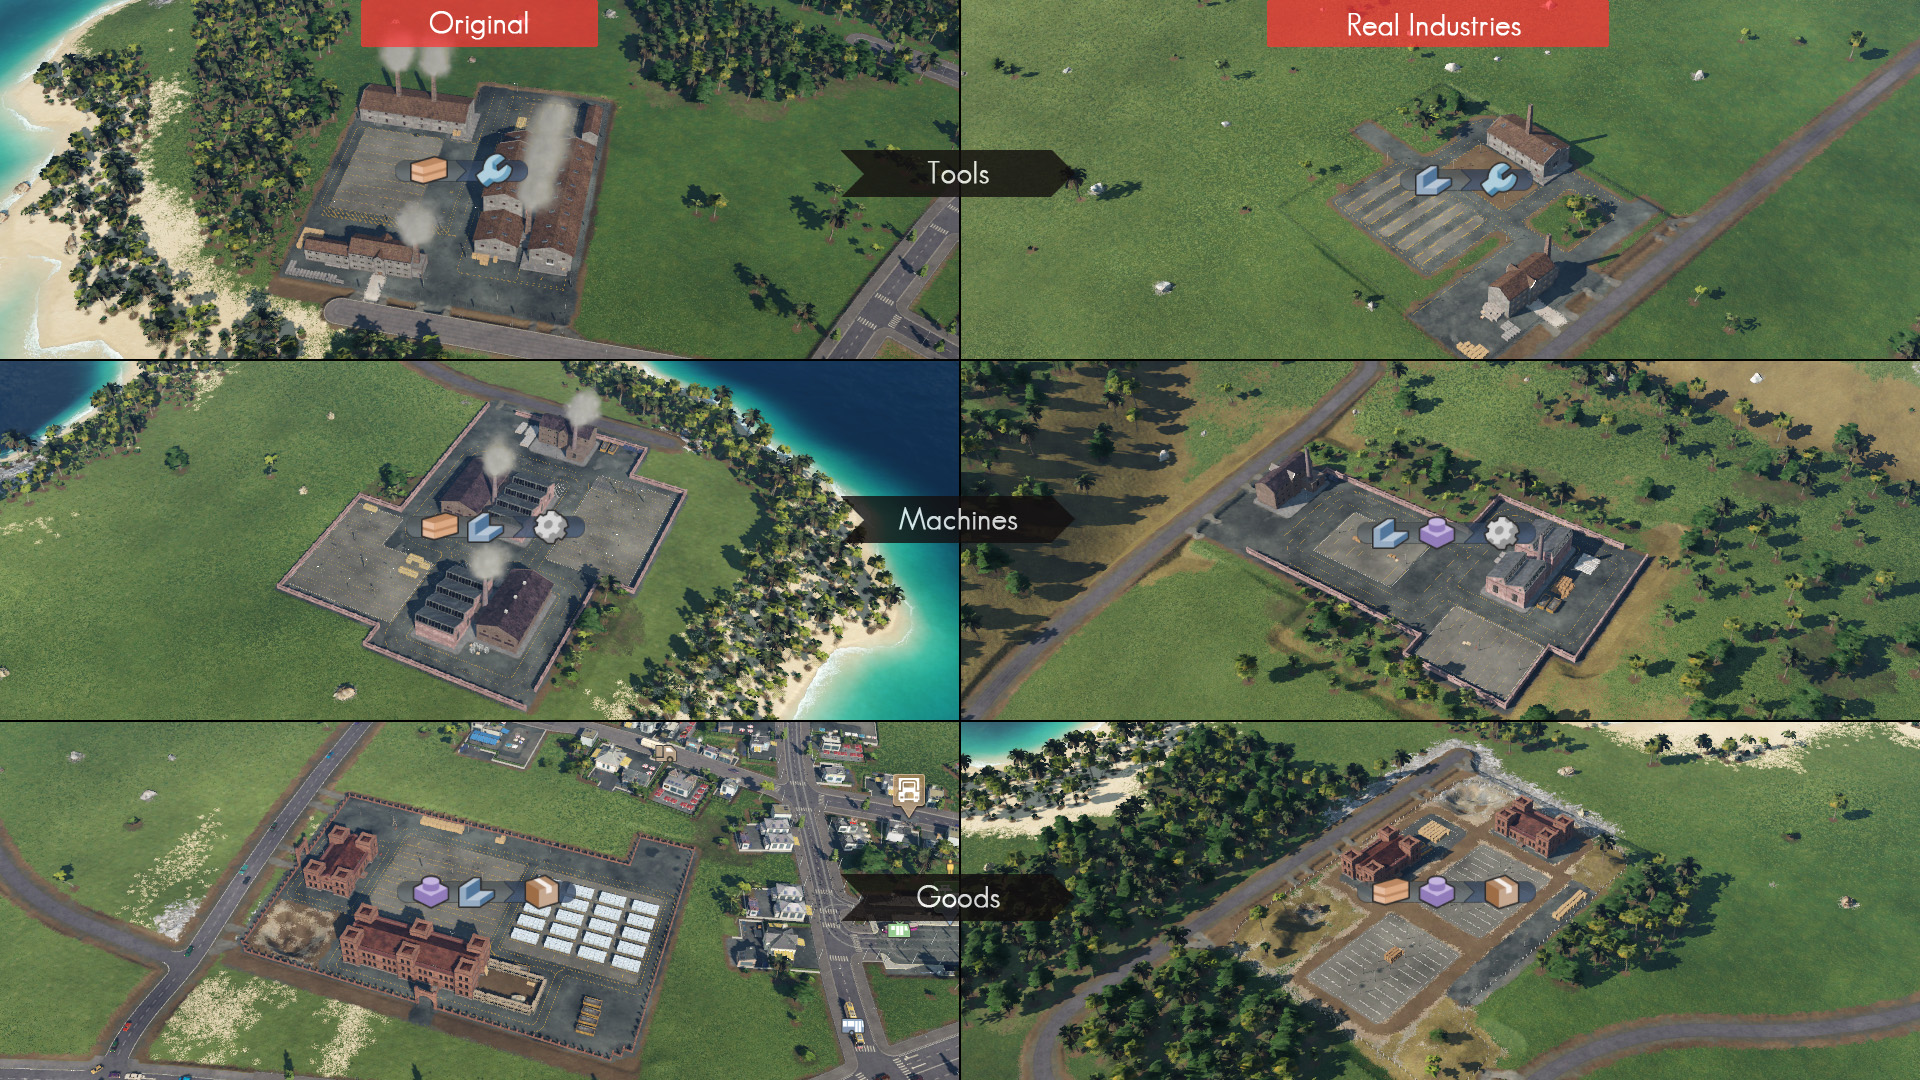 Transport Fever 2 - Real Industries